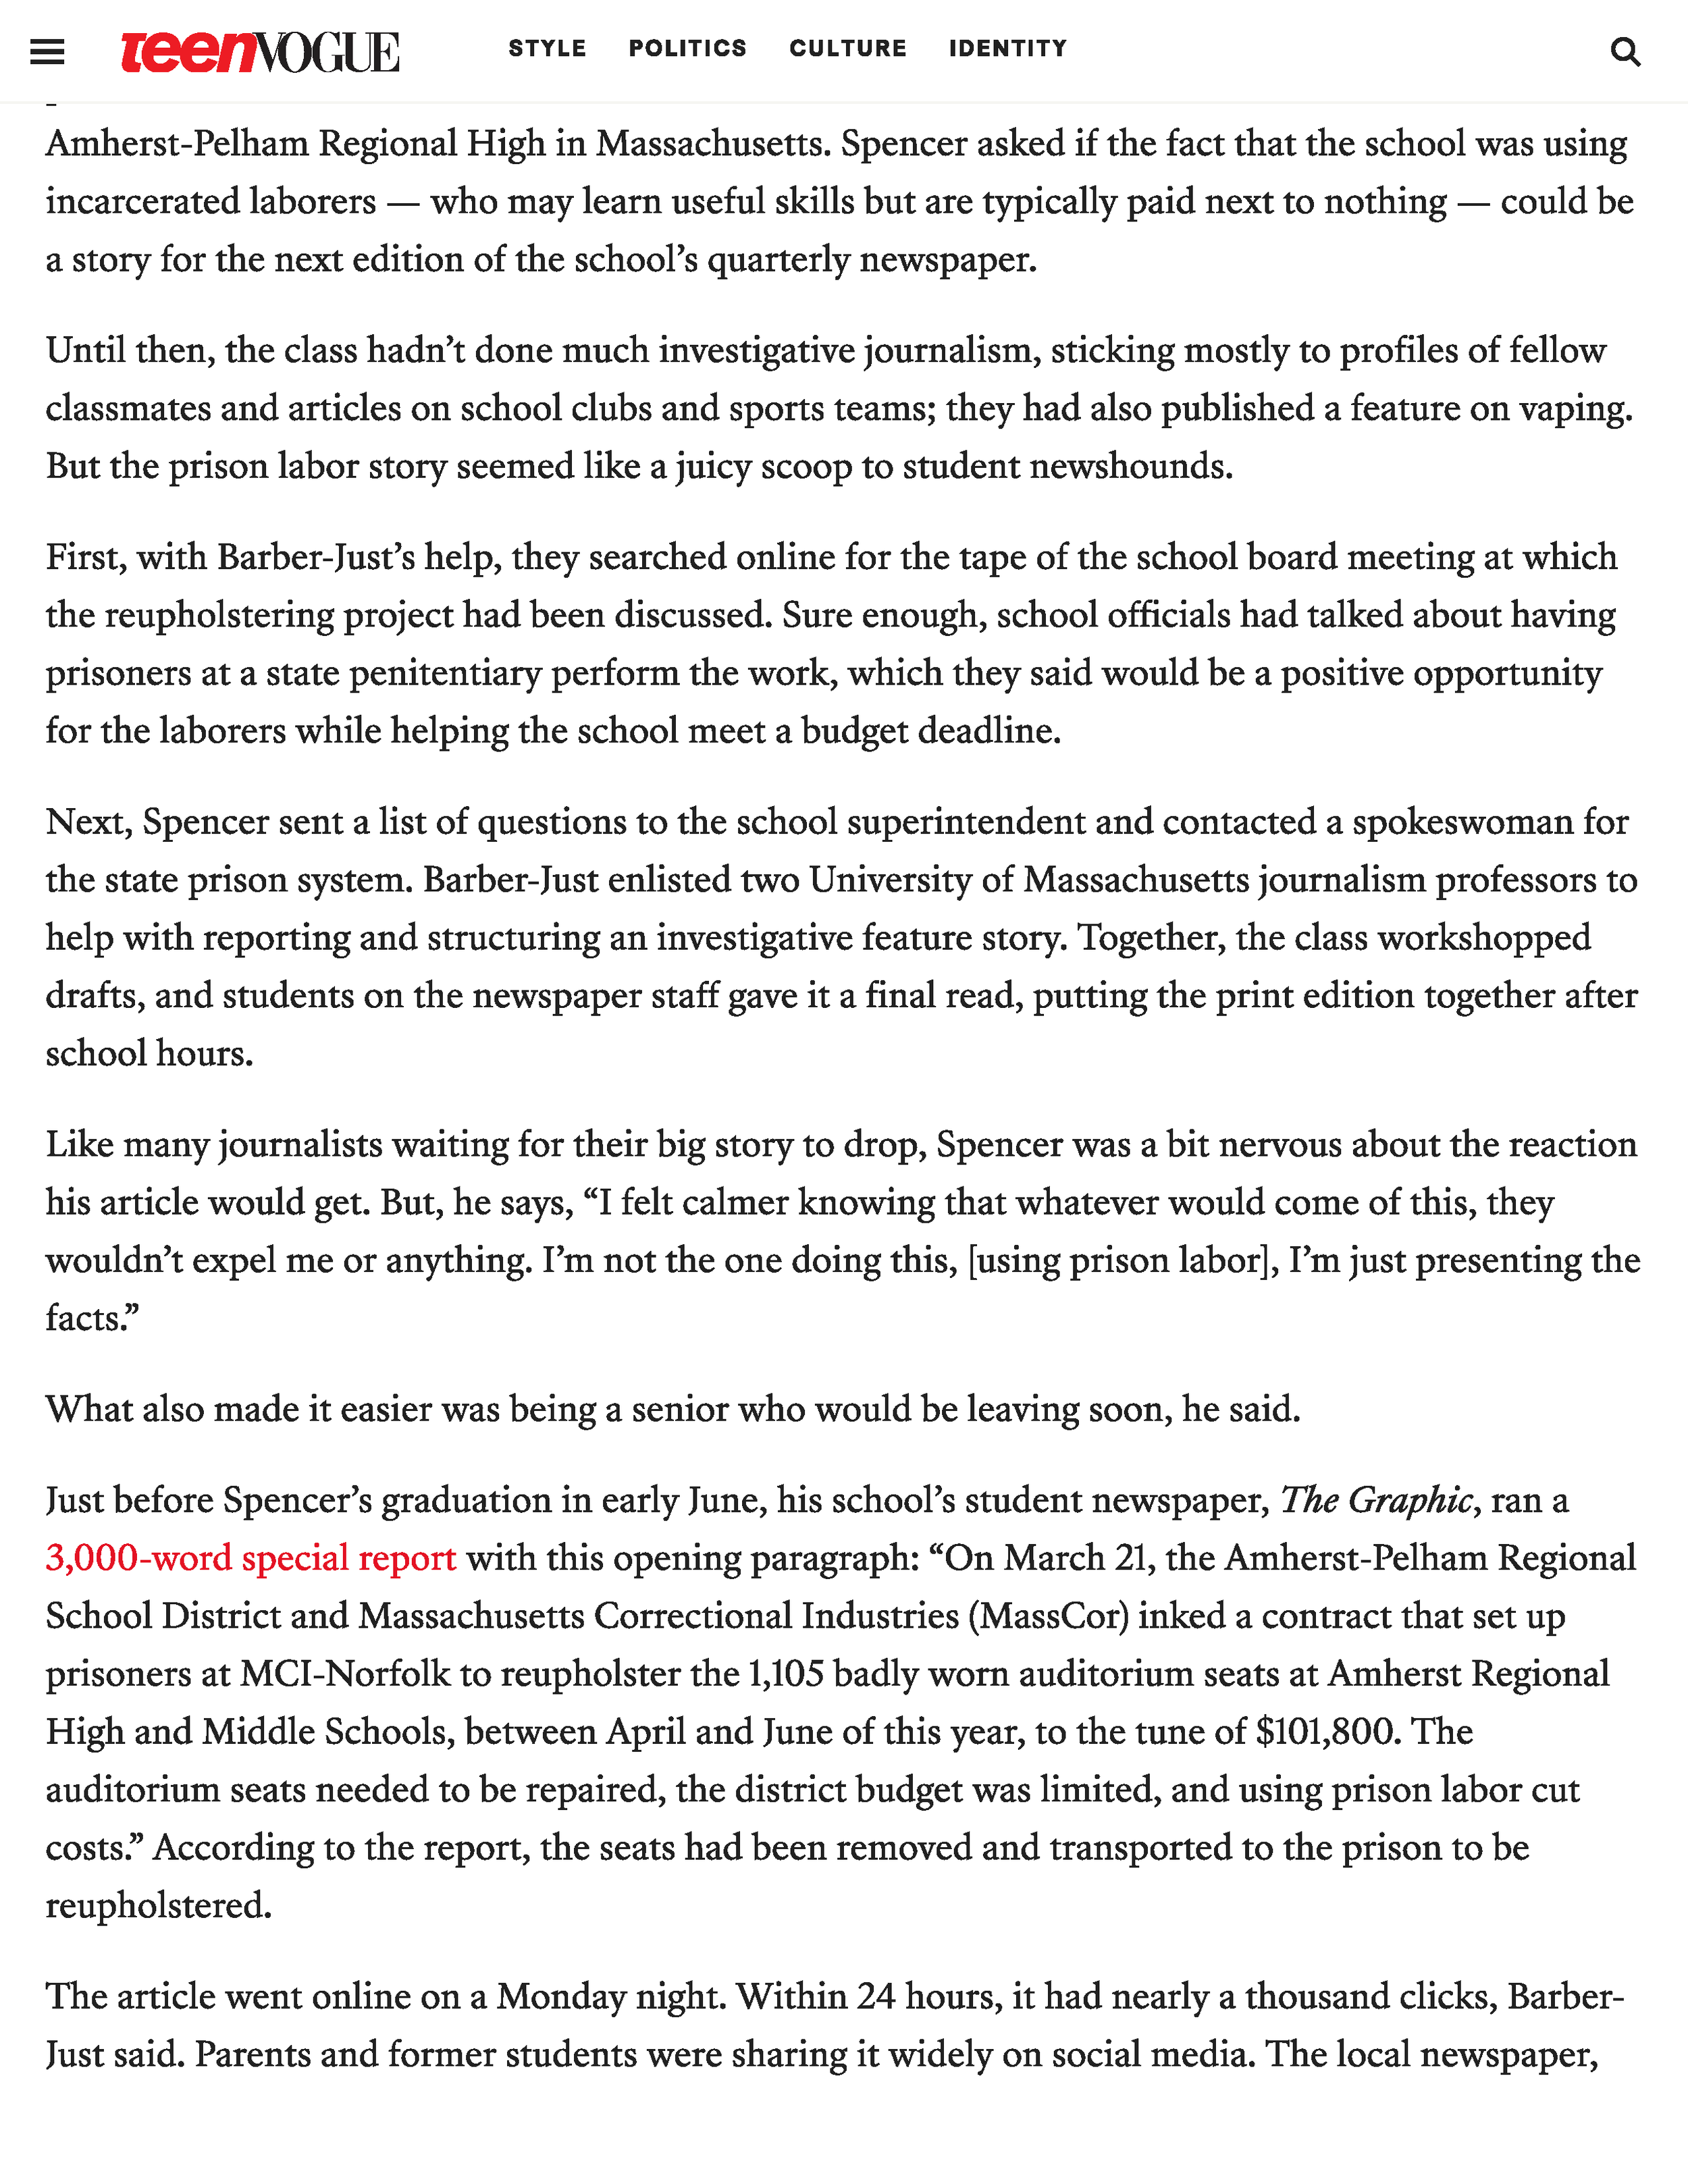 These Massachusetts Student Journalists...ool's Use of Prison Labor | Teen Vogue_Page_2 copy.png